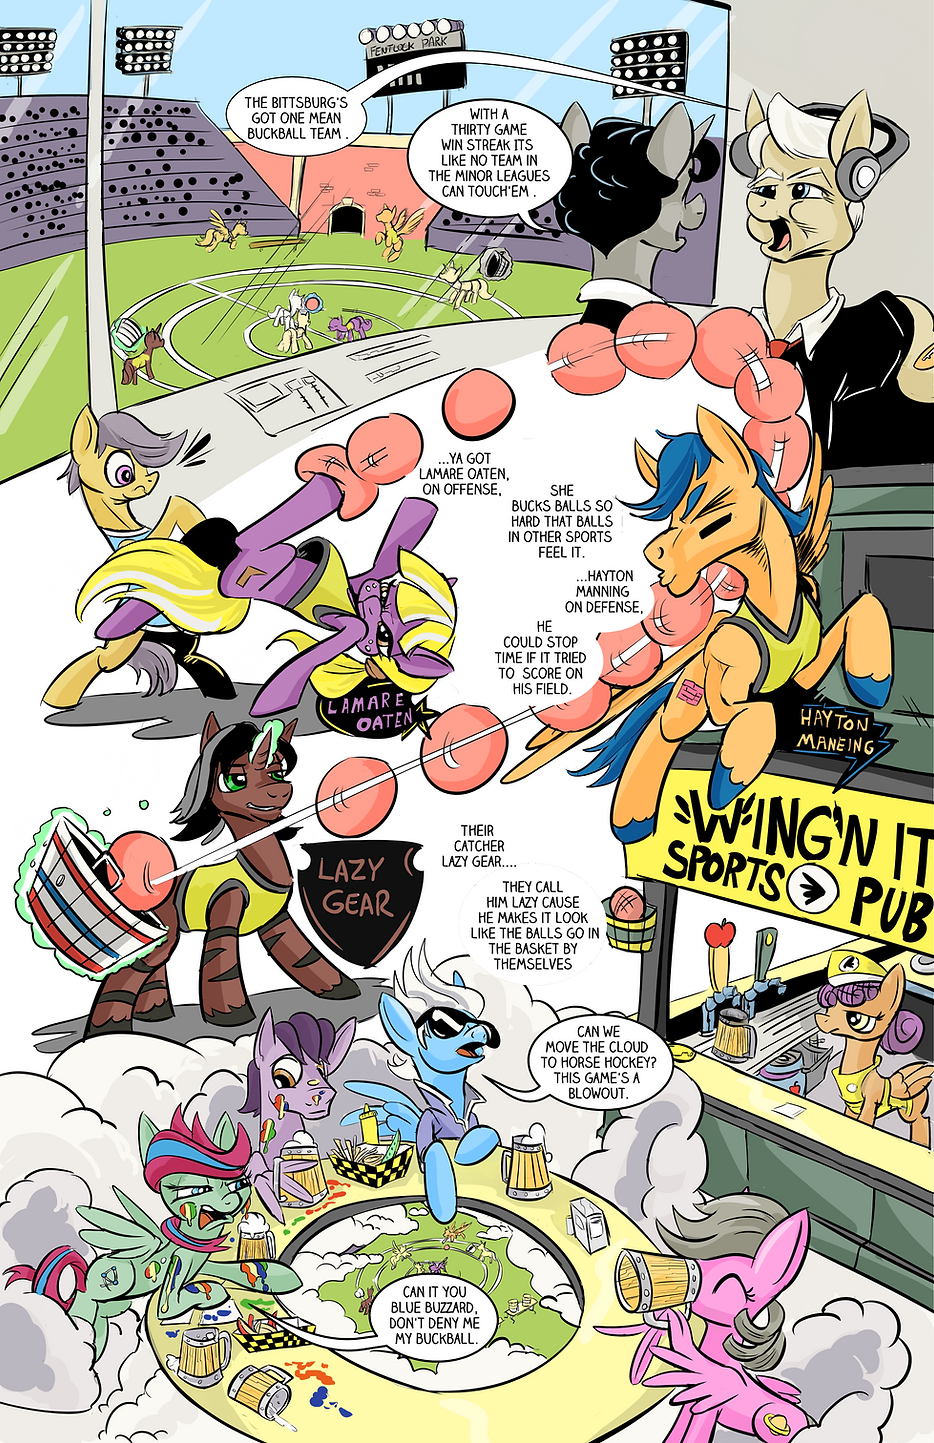 Ponies in the Outfield 01.png